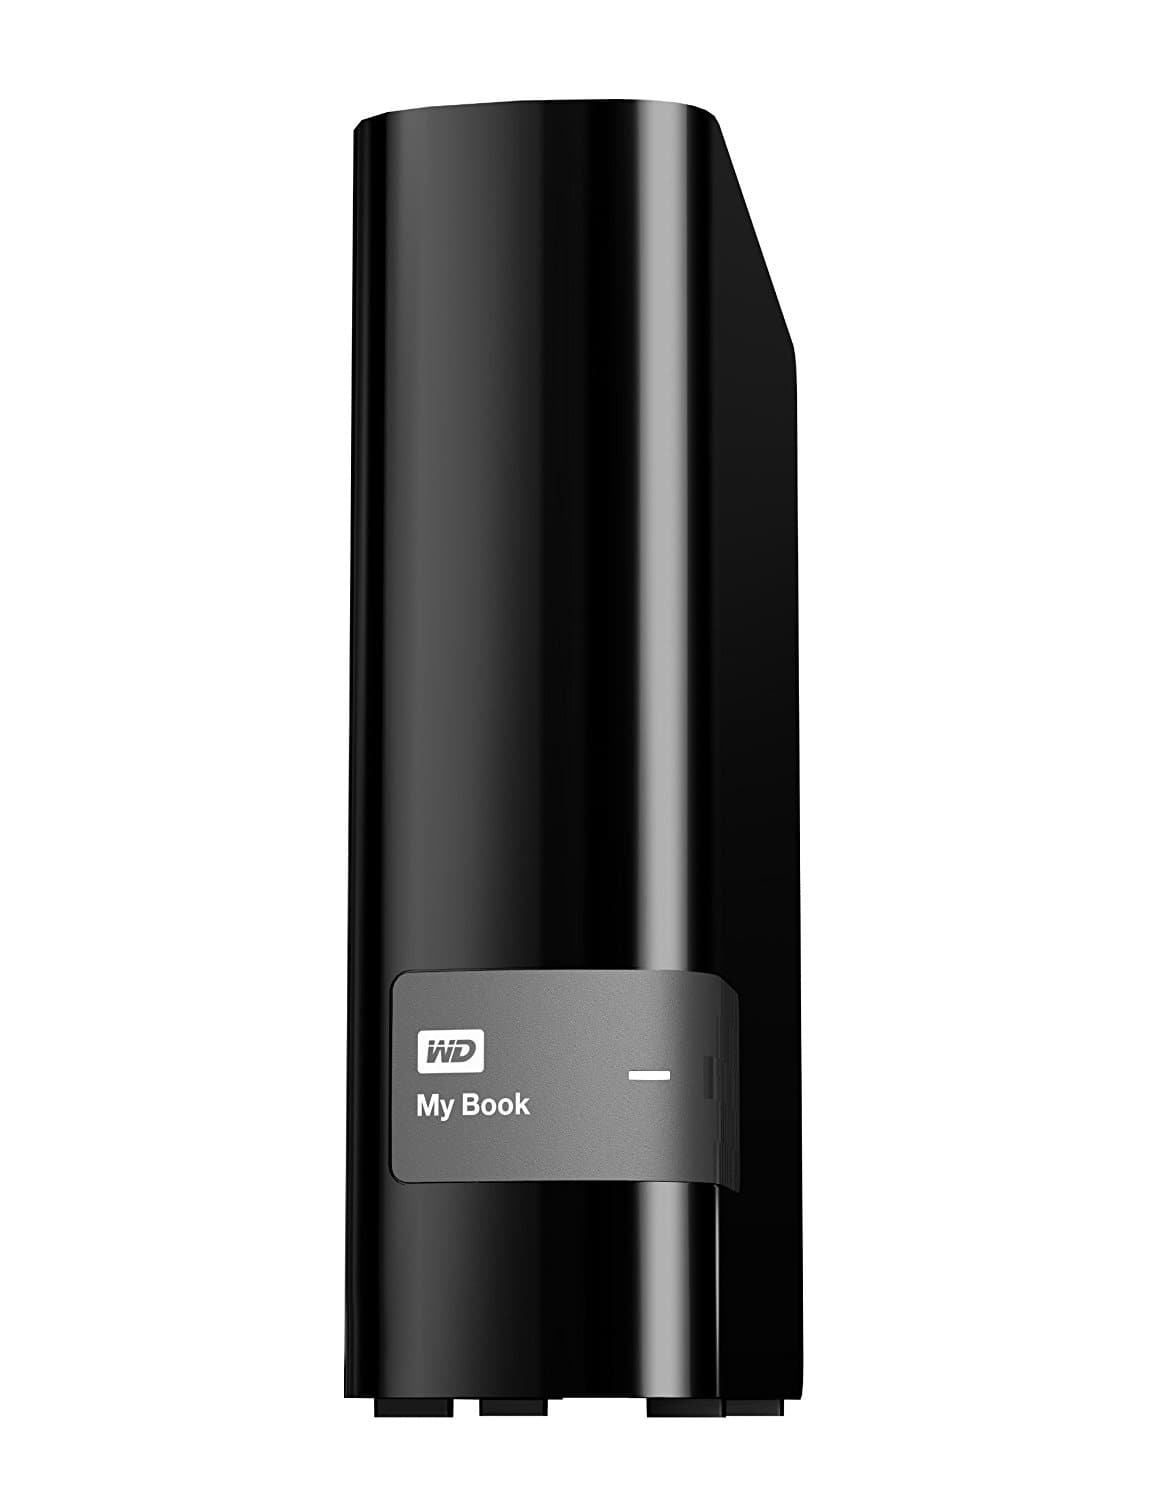 8TB WD My Book Desktop USB 3.0 External Hard Drive $184 + Free Shipping for Plex Pass Subscribers